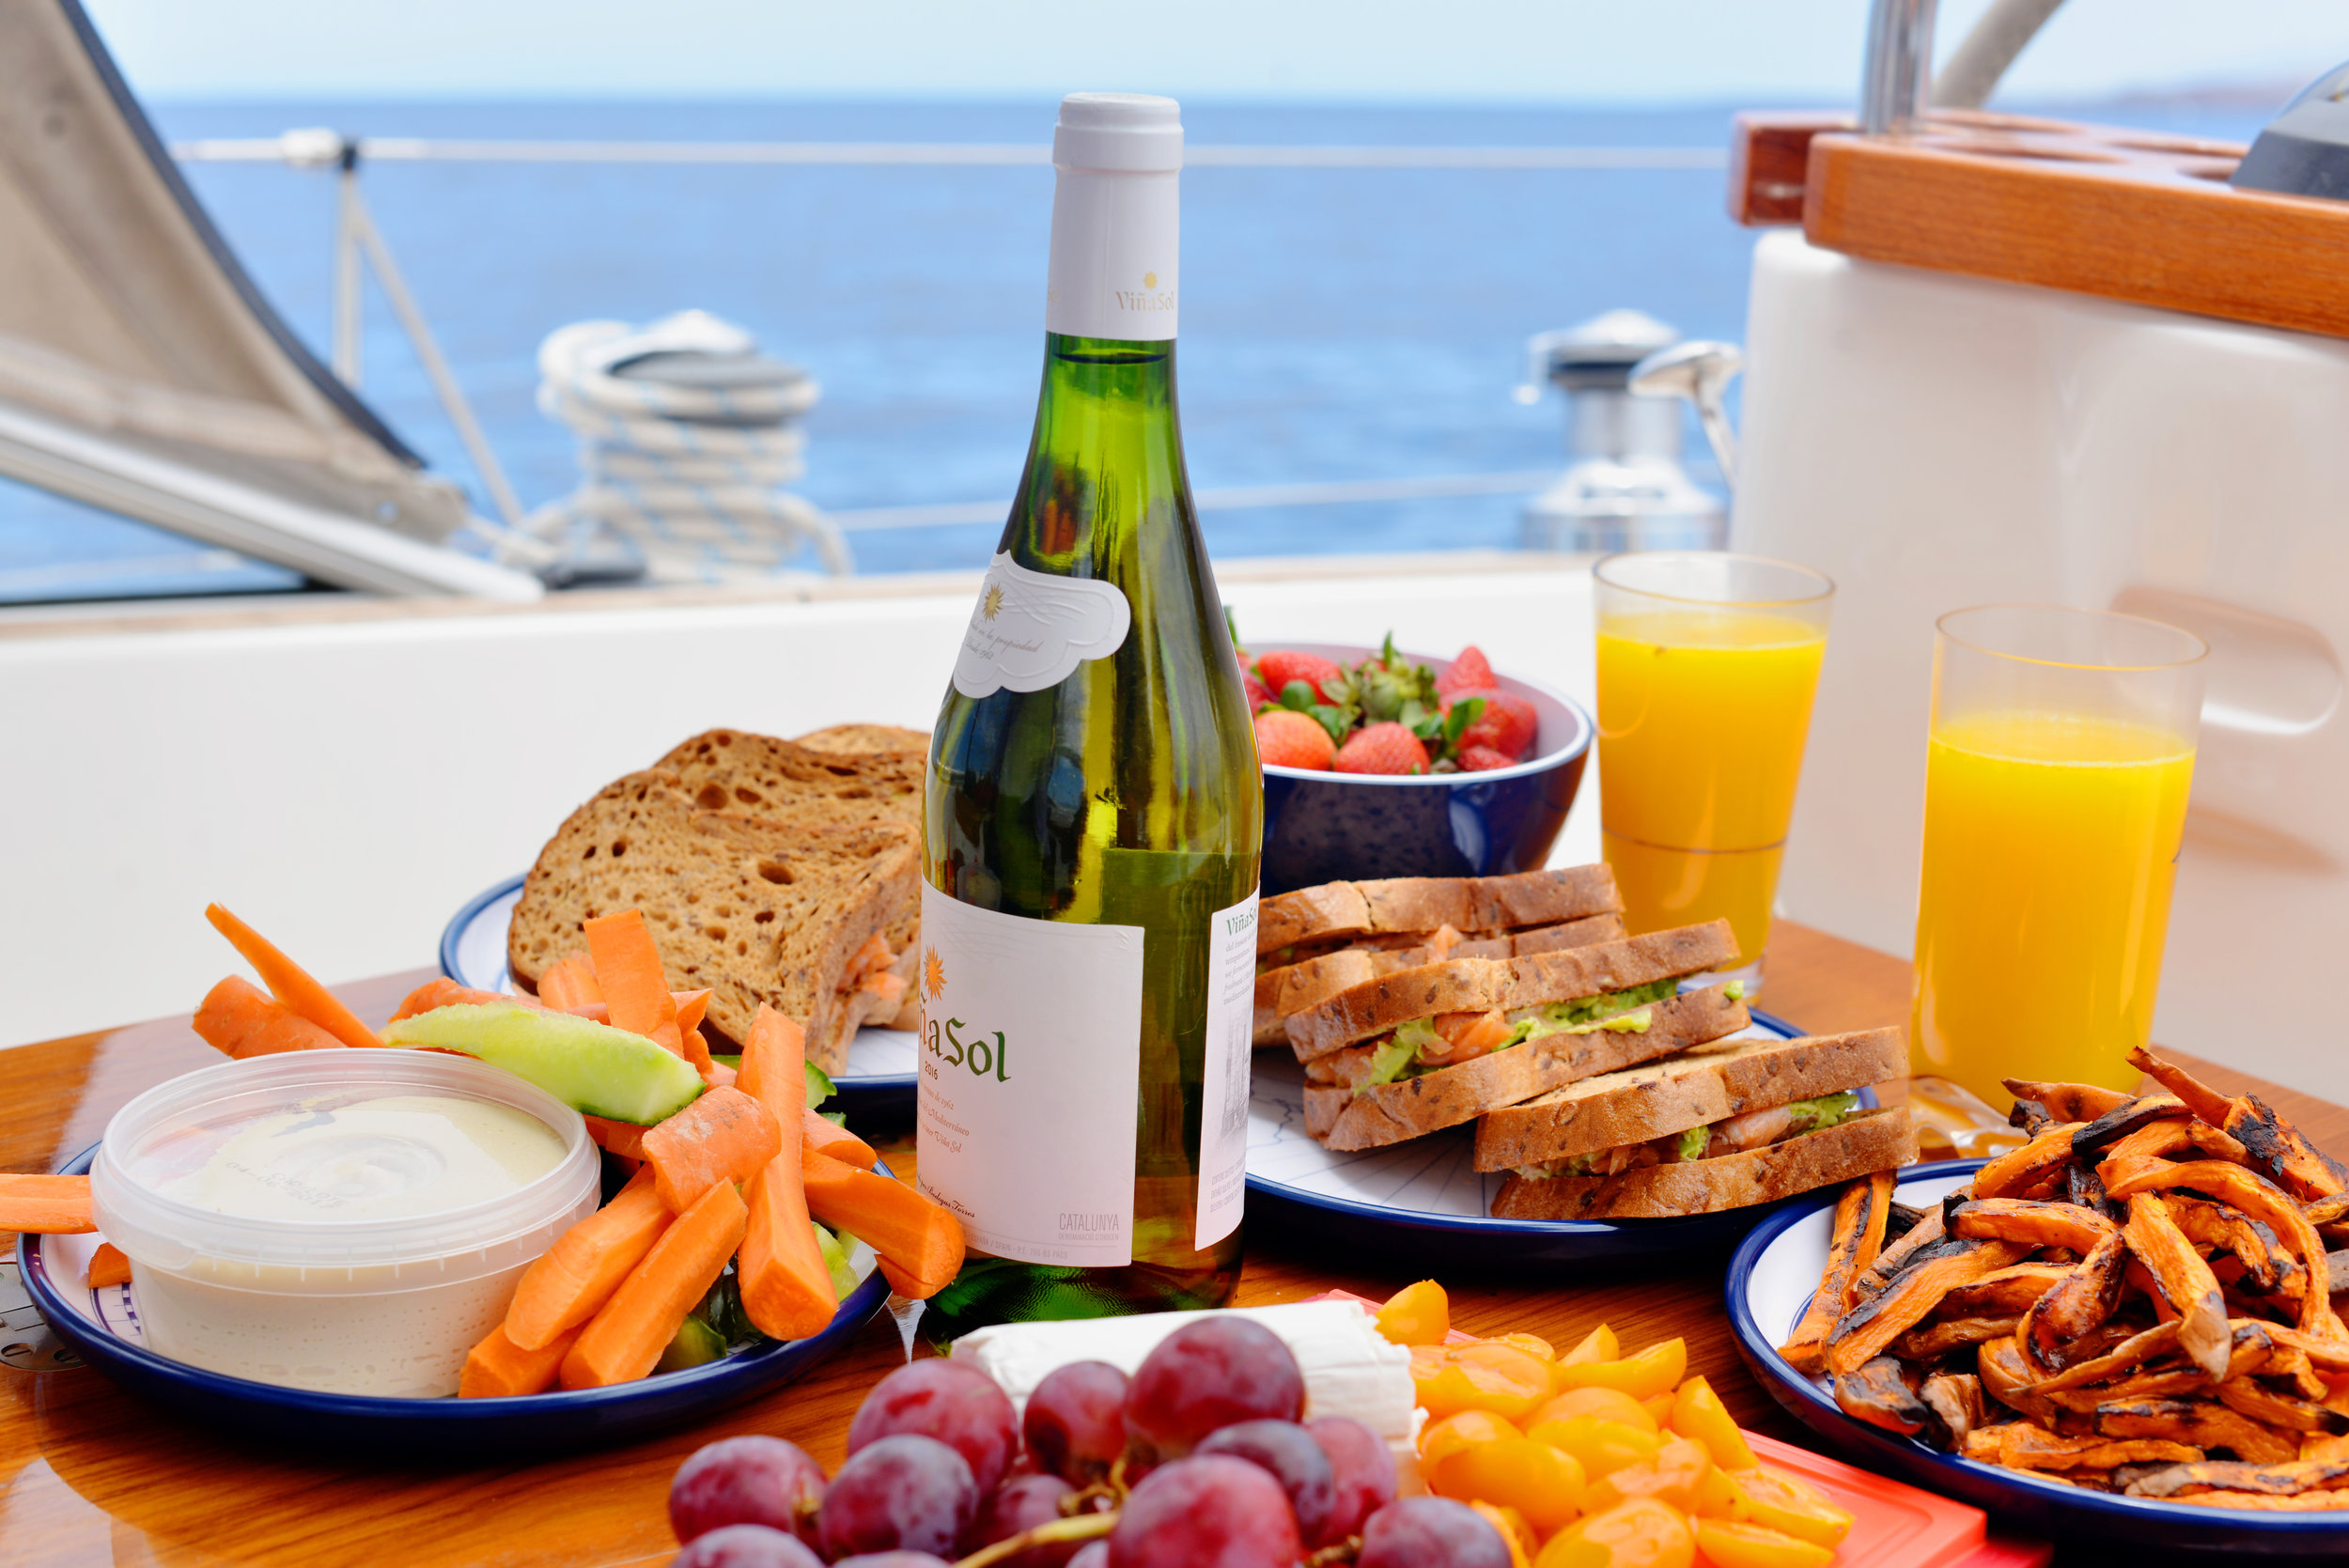 4. Food tastes better by the ocean -